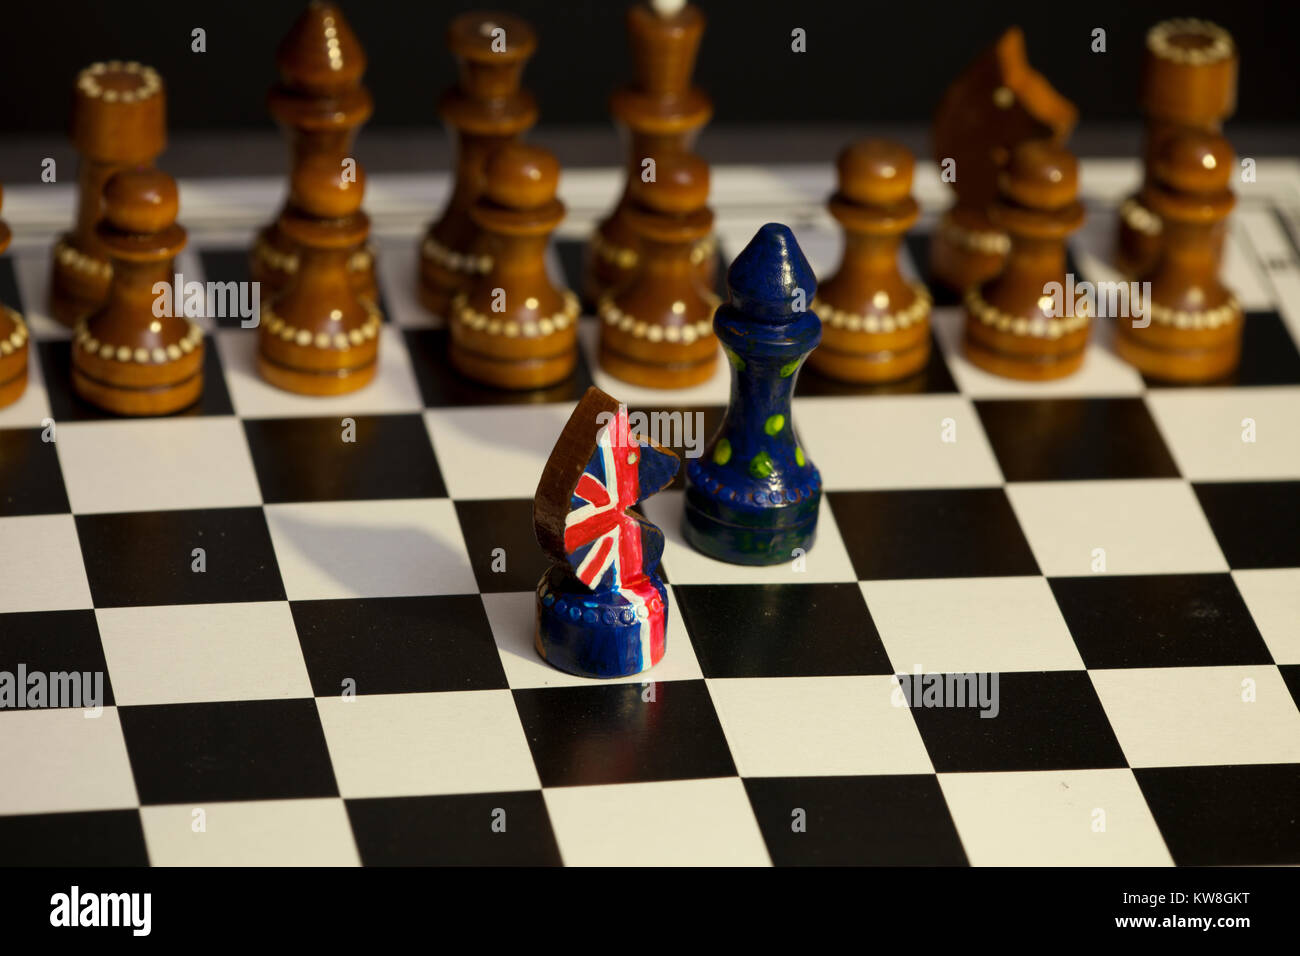 chess game Great Britain and the European Union, Brexit British and European confrontation - Stock Image